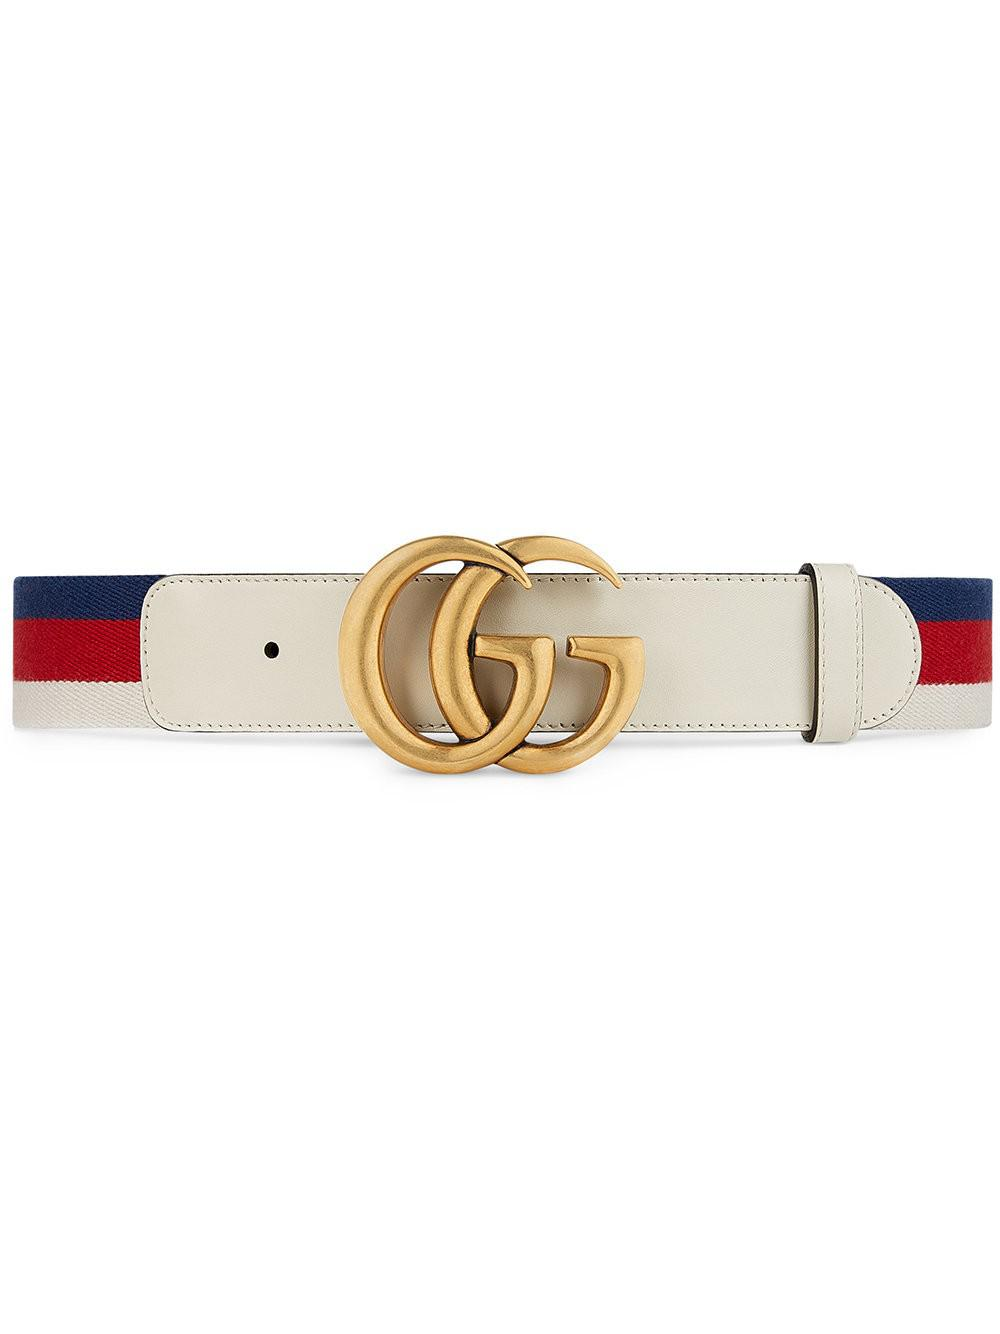 dde18565a5f Lyst - Gucci Sylvie Web Belt With Double G Buckle